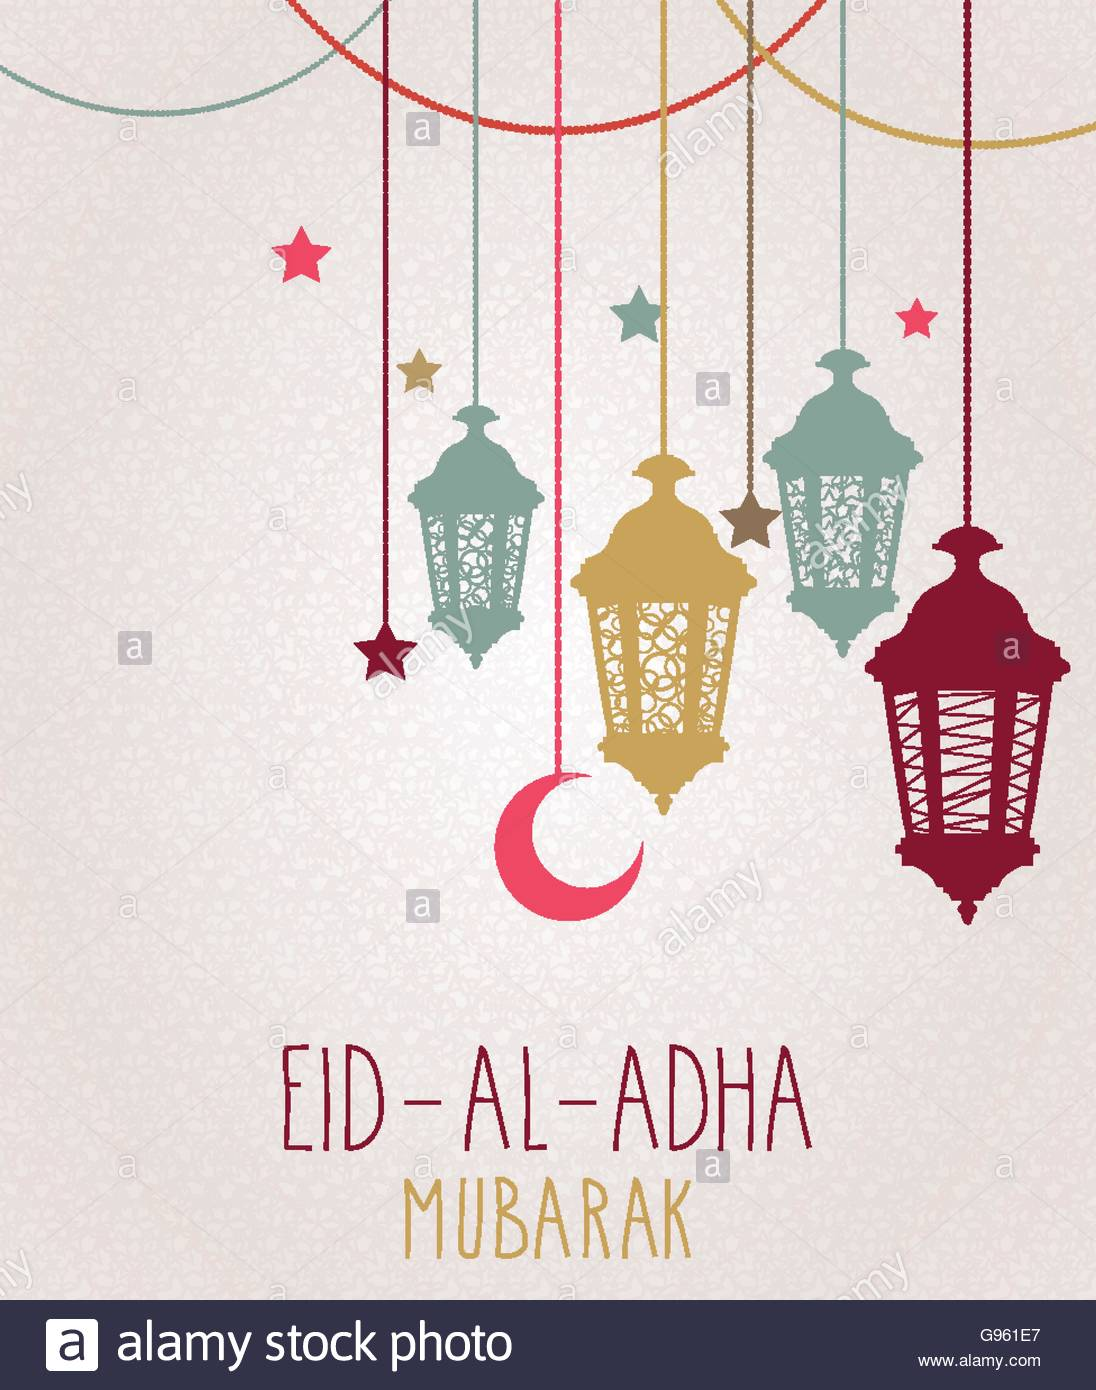 Eid al adha mubarak greeting card hanging colorful lantern vector eid al adha mubarak greeting card hanging colorful lantern vector illustration m4hsunfo